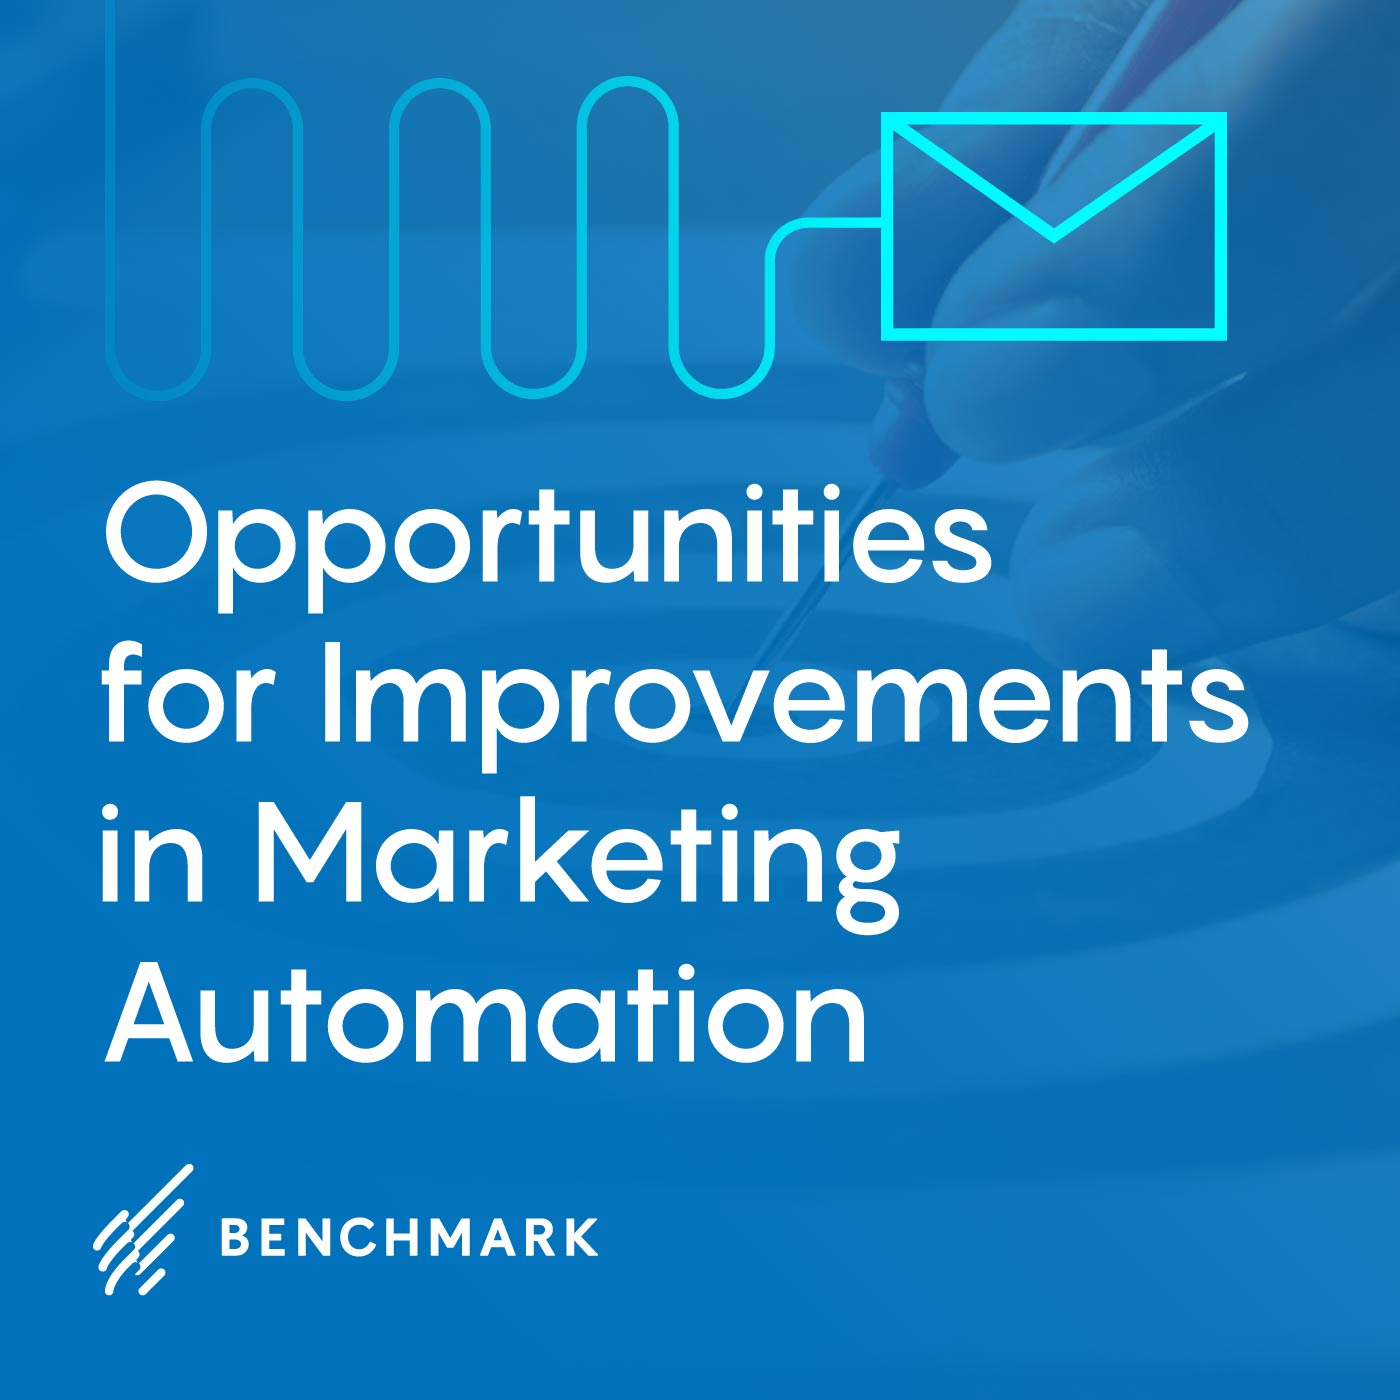 Opportunities For Improvements in Marketing Automation